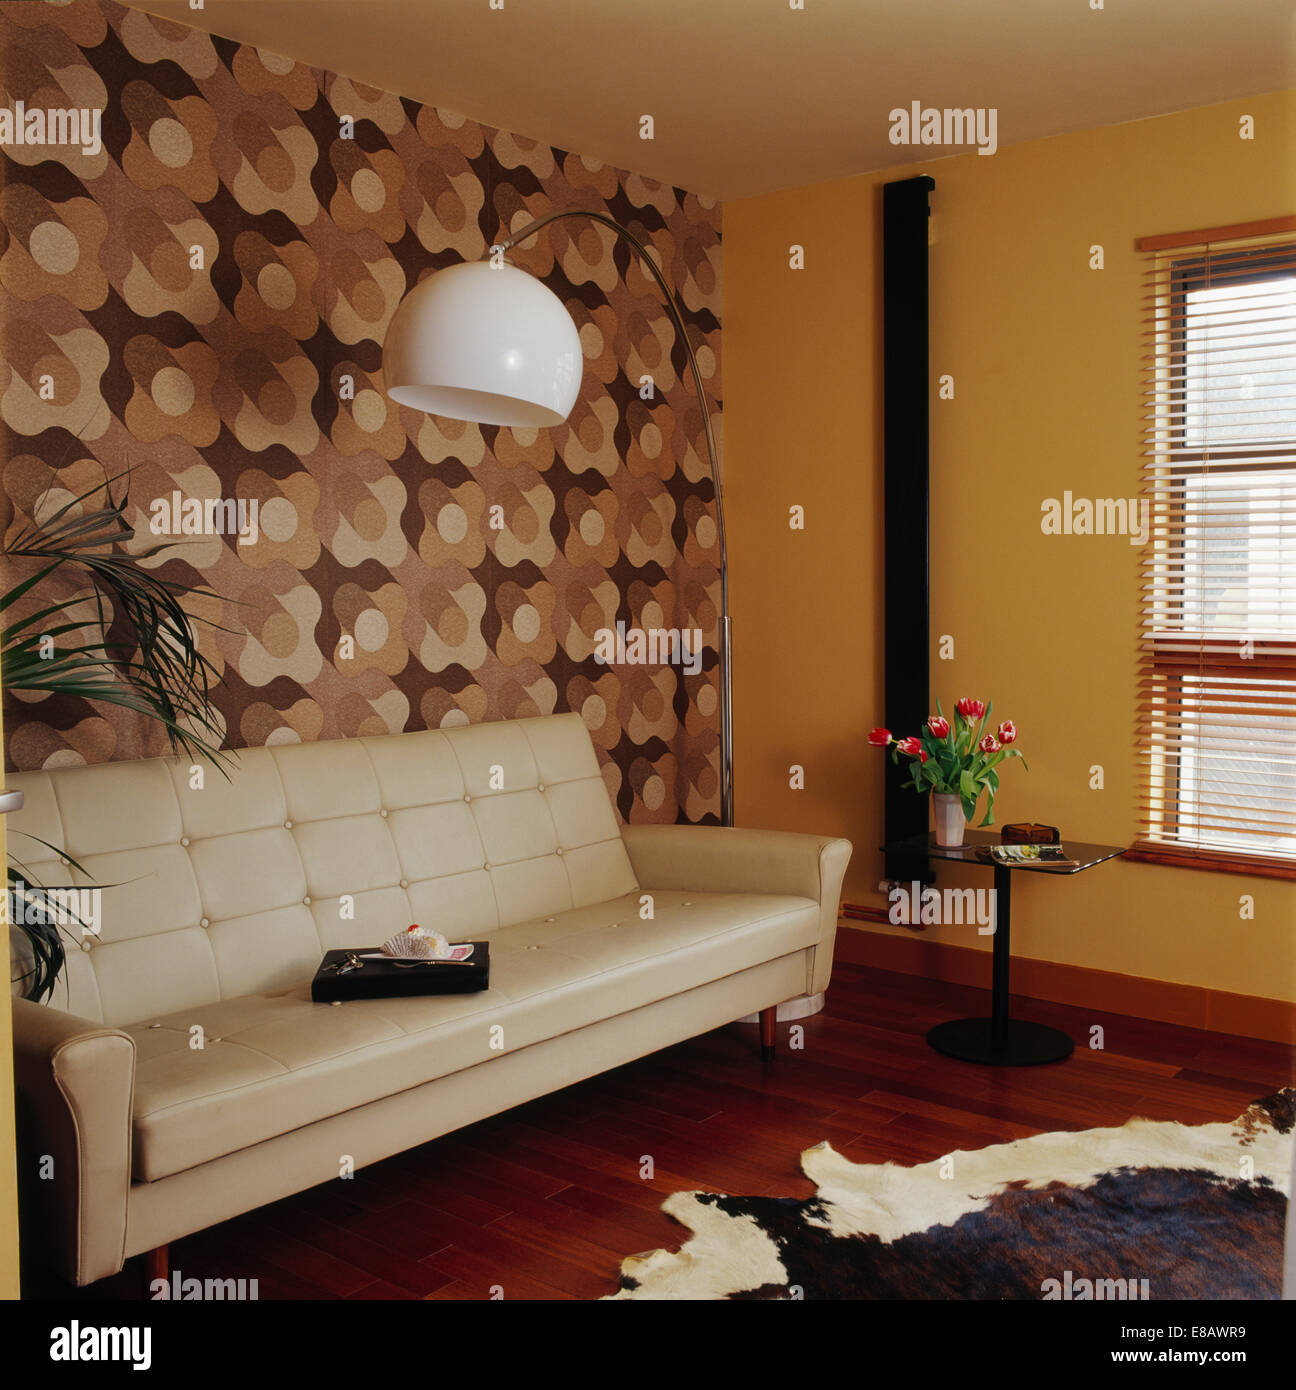 Surprising Brown Cream Abstract Patterned Wallpaper Behind Cream Spiritservingveterans Wood Chair Design Ideas Spiritservingveteransorg